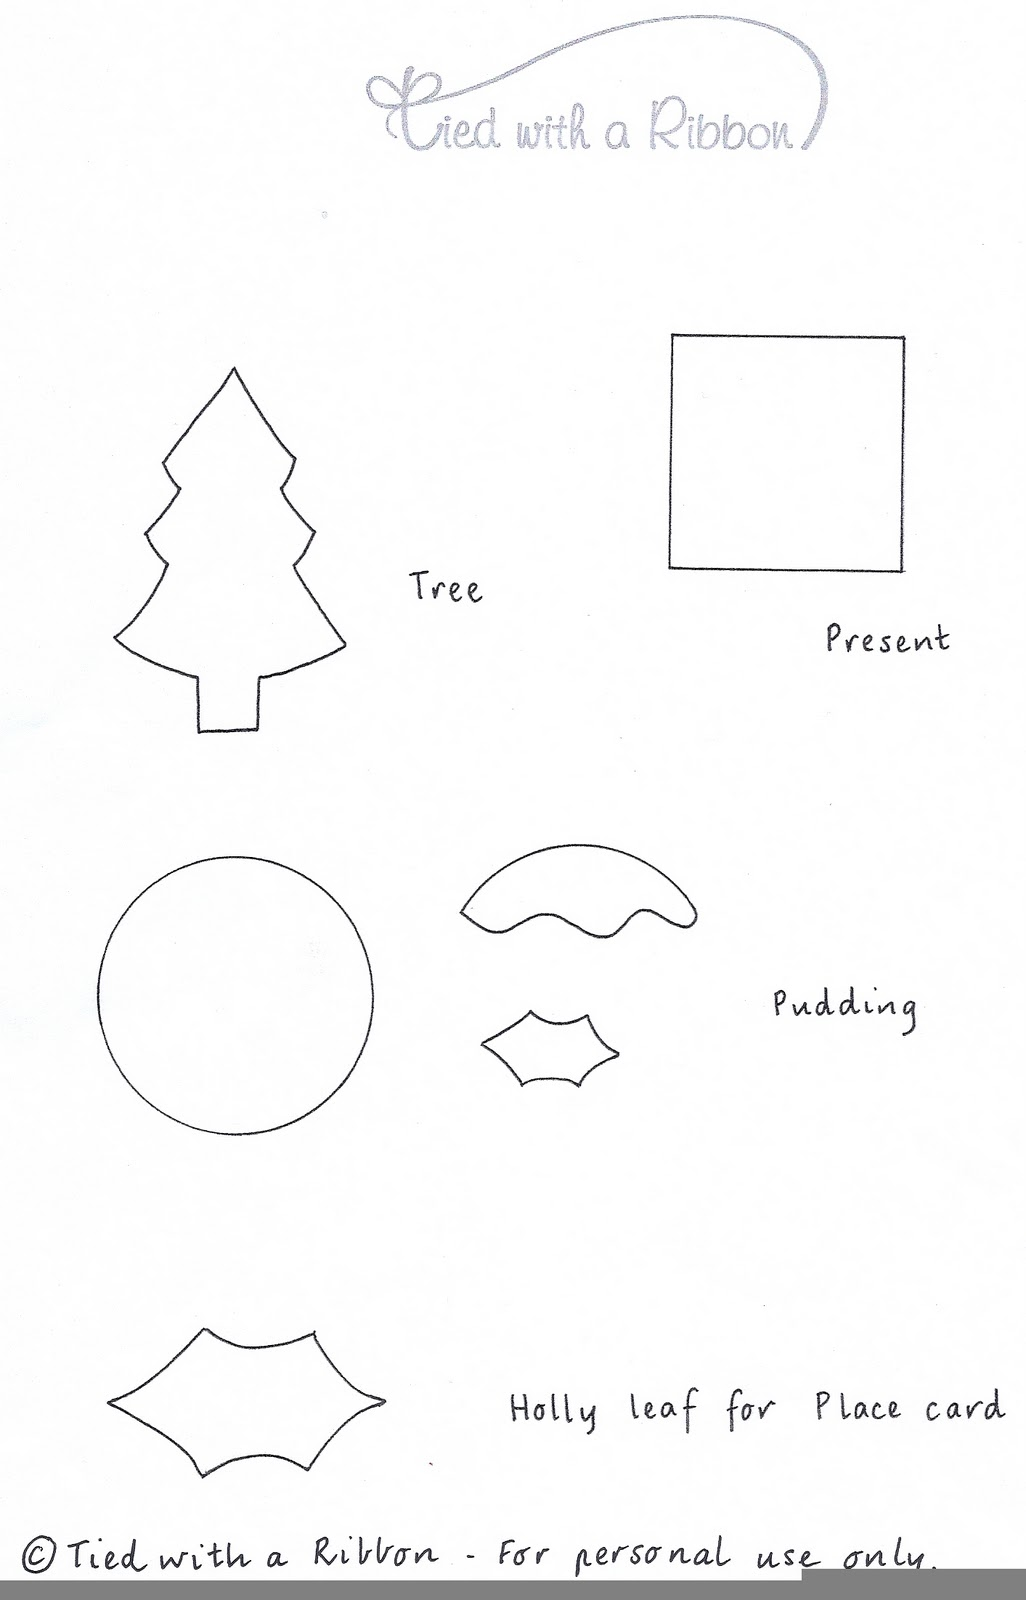 Collectionvdwn Vintage Teapot Template as well Queen Crowns Templates further 274508539760456044 as well Birthdayhat additionally Printable Princess Crown Template. on cupcake wrapper template pdf